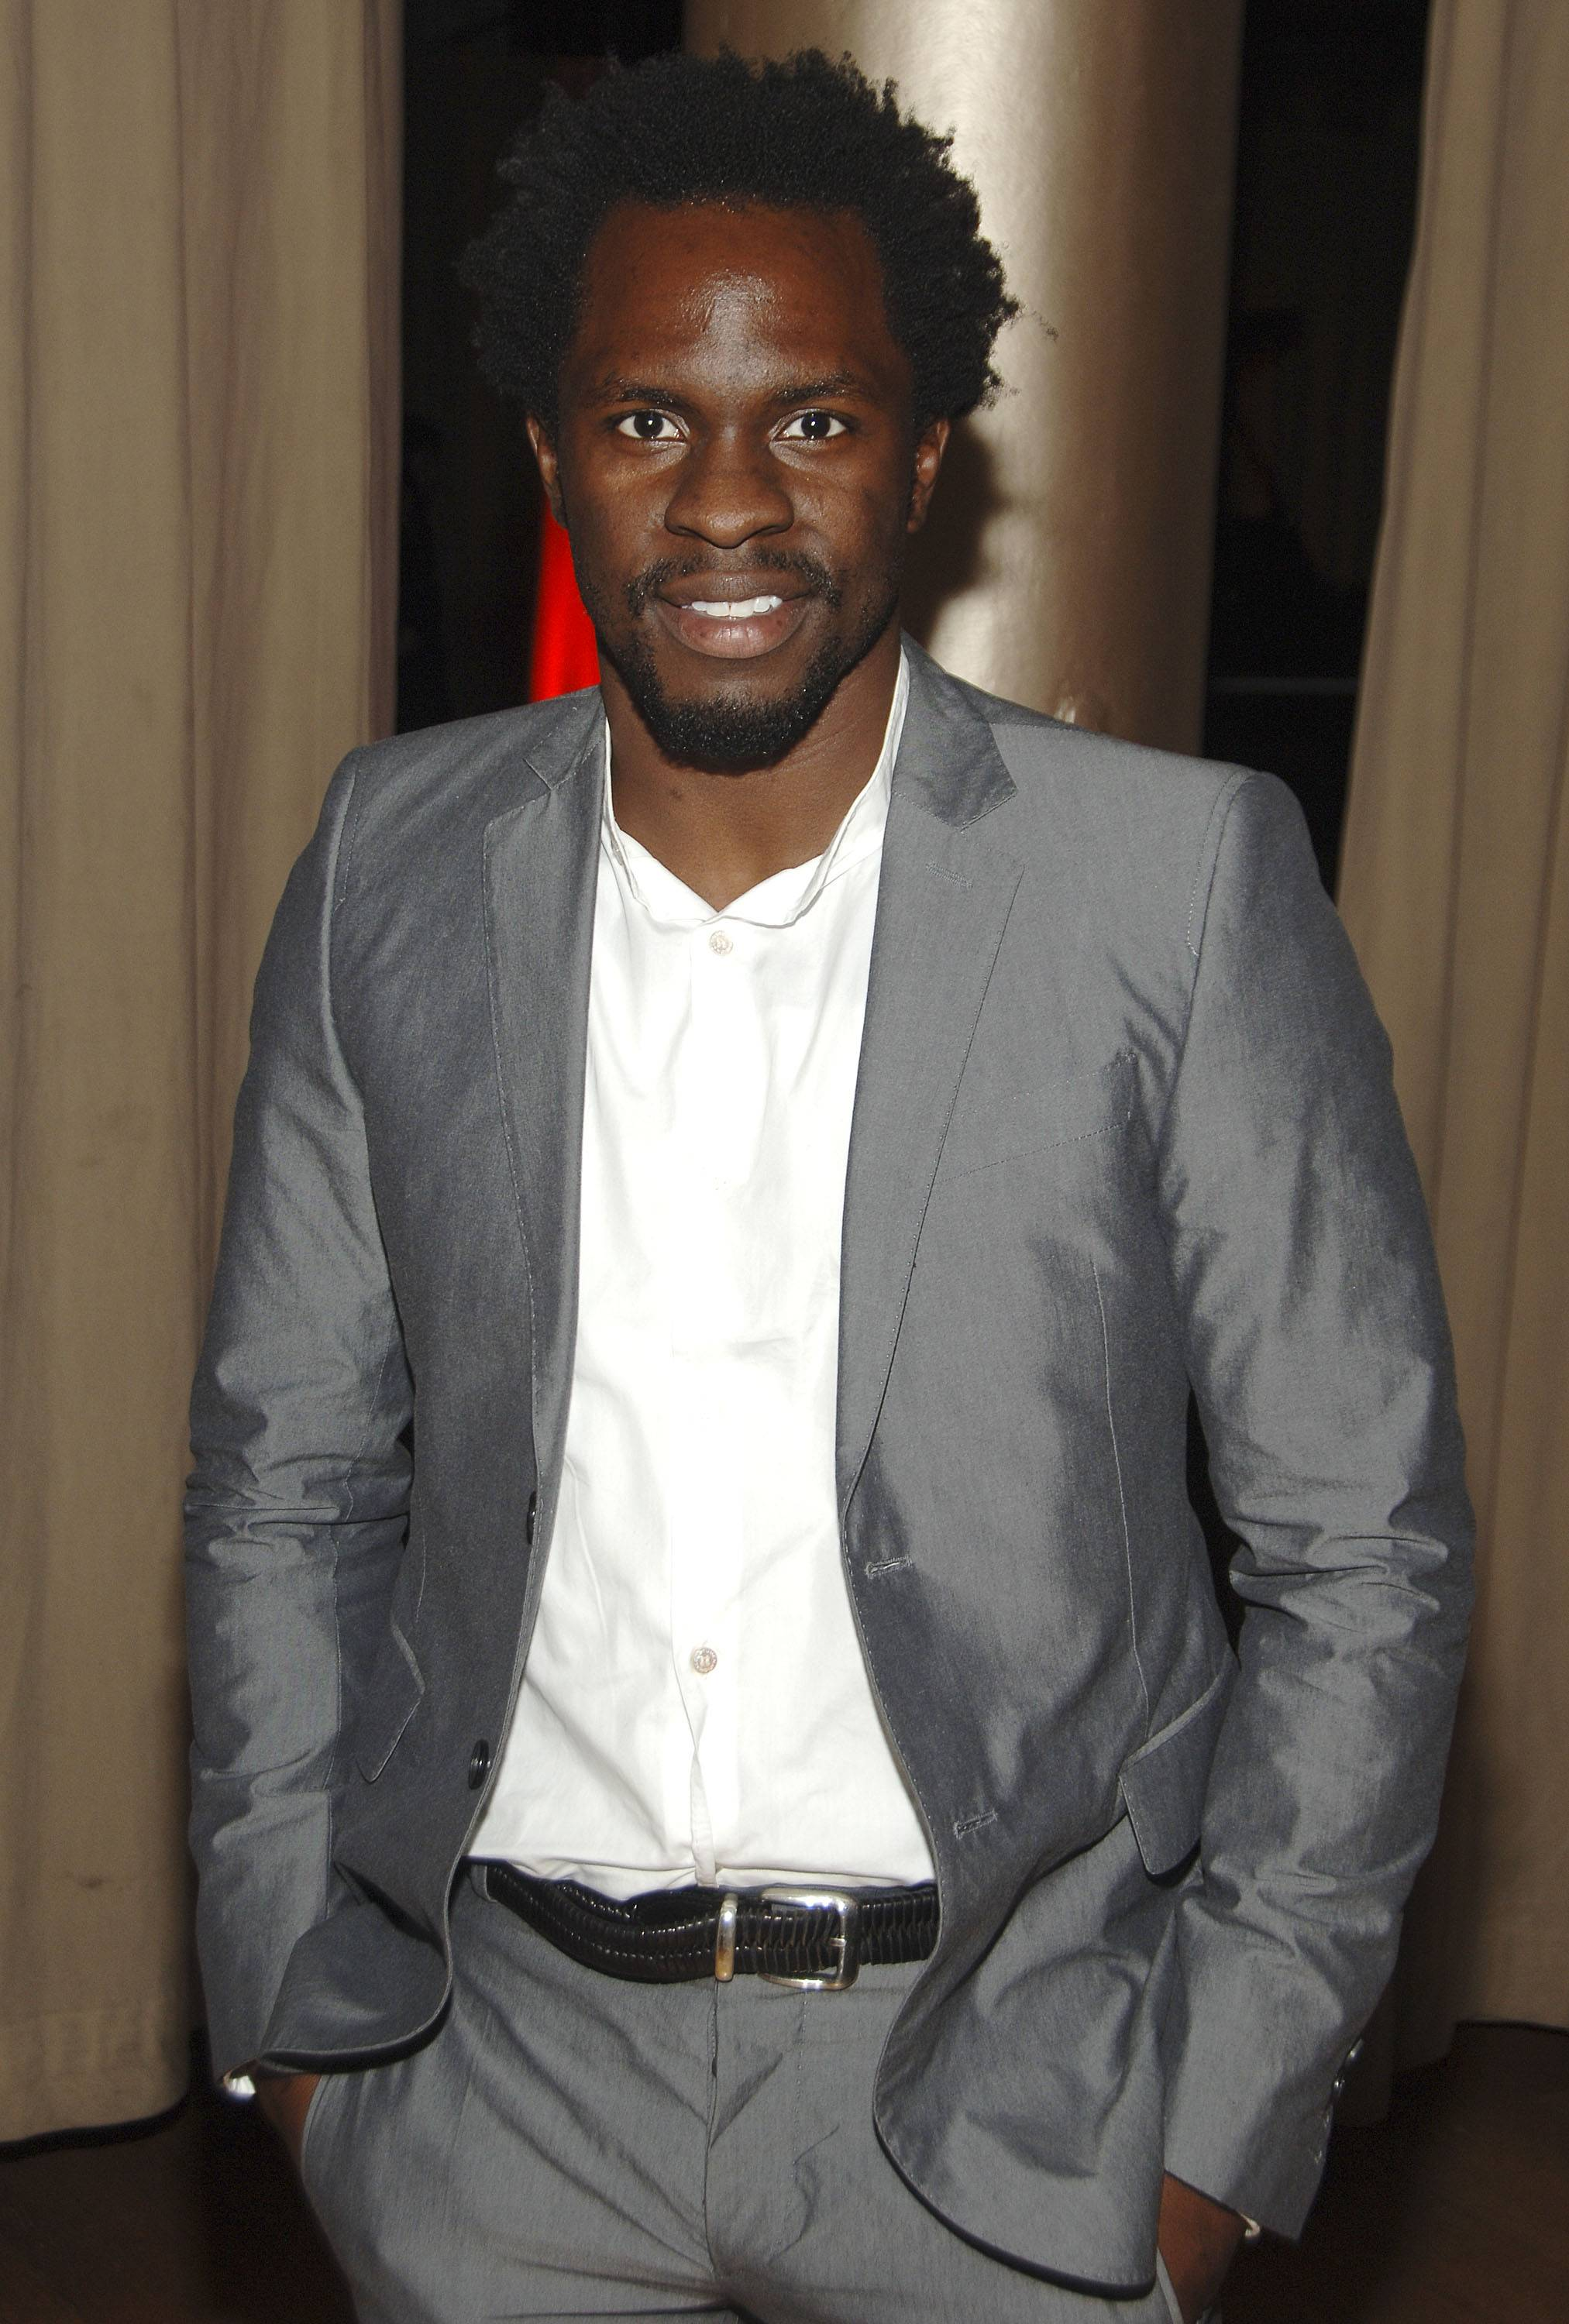 The Savages - In 2007, Akinnagbe appeared in the film The Savages alongside Philip Seymour Hoffman and Laura Linney, playing Jimmy, a caregiver at a nursing home.(Photo by Andrew H. Walker/Getty Images)